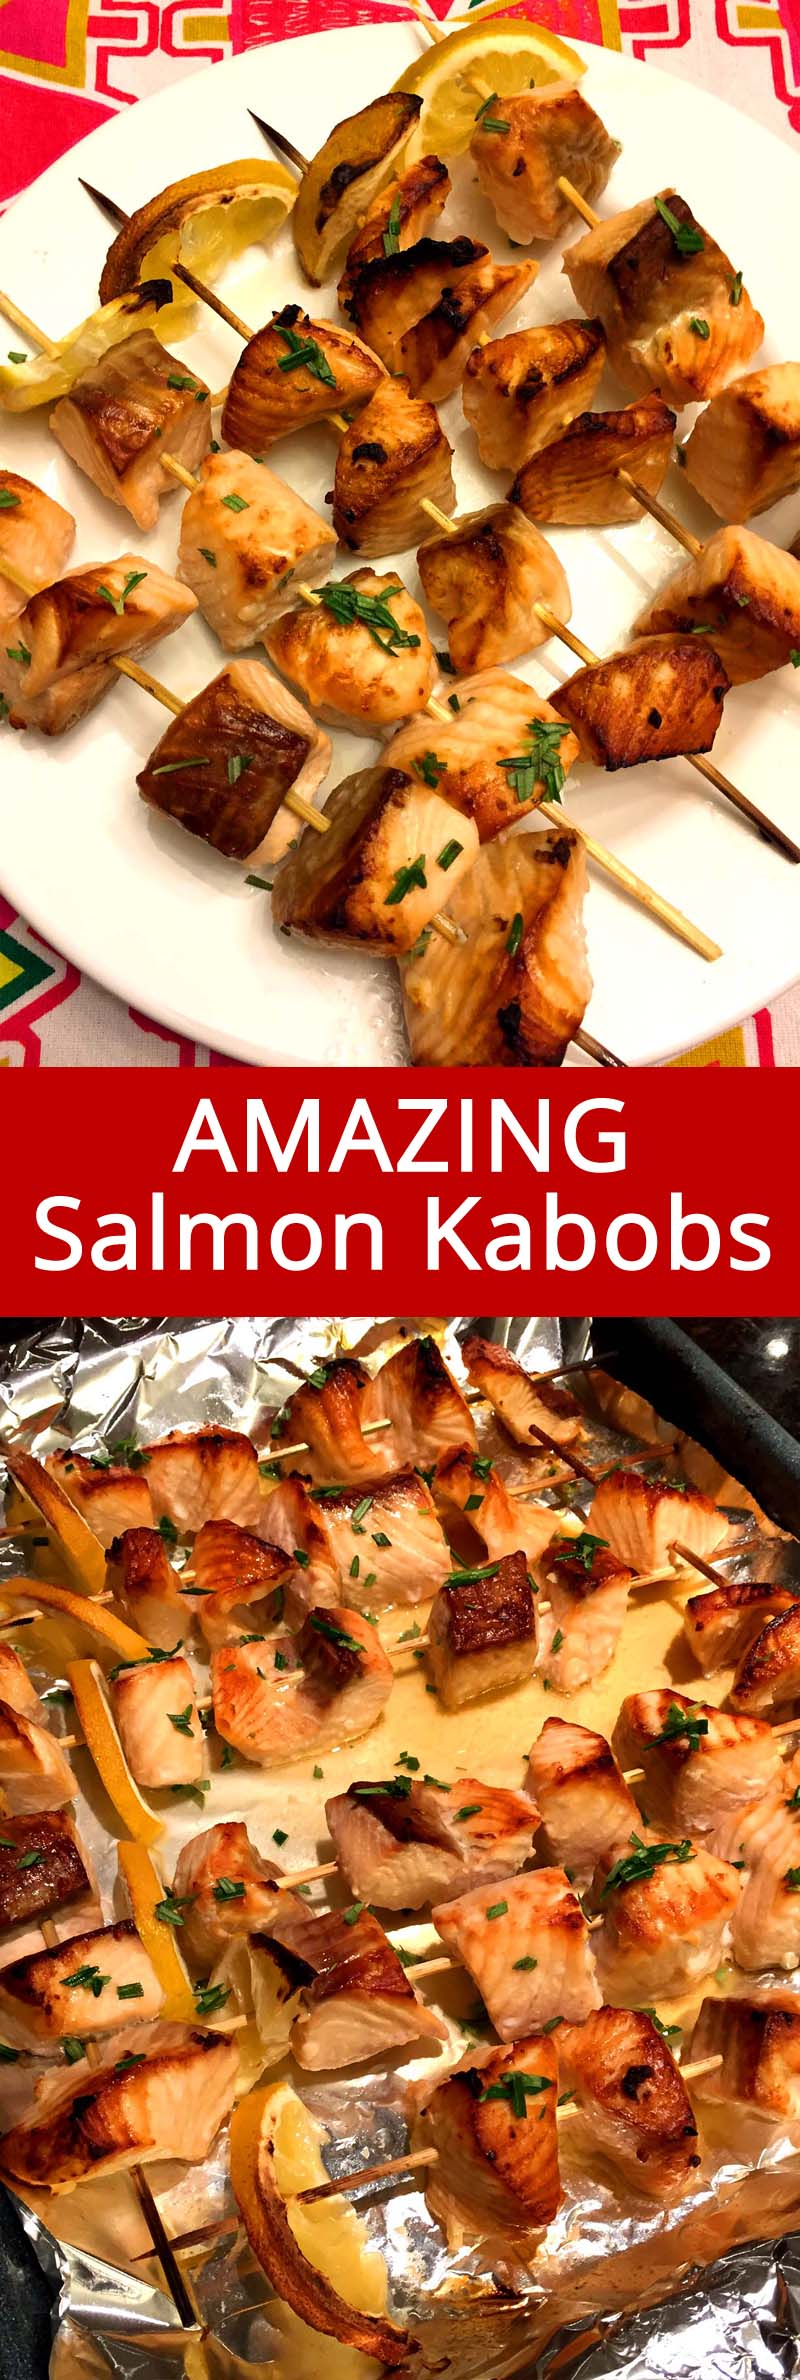 These easy baked salmon kabobs are amazing! Marinated salmon pieces threaded on a skewer and baked in the oven to perfection! So healthy and delicious!